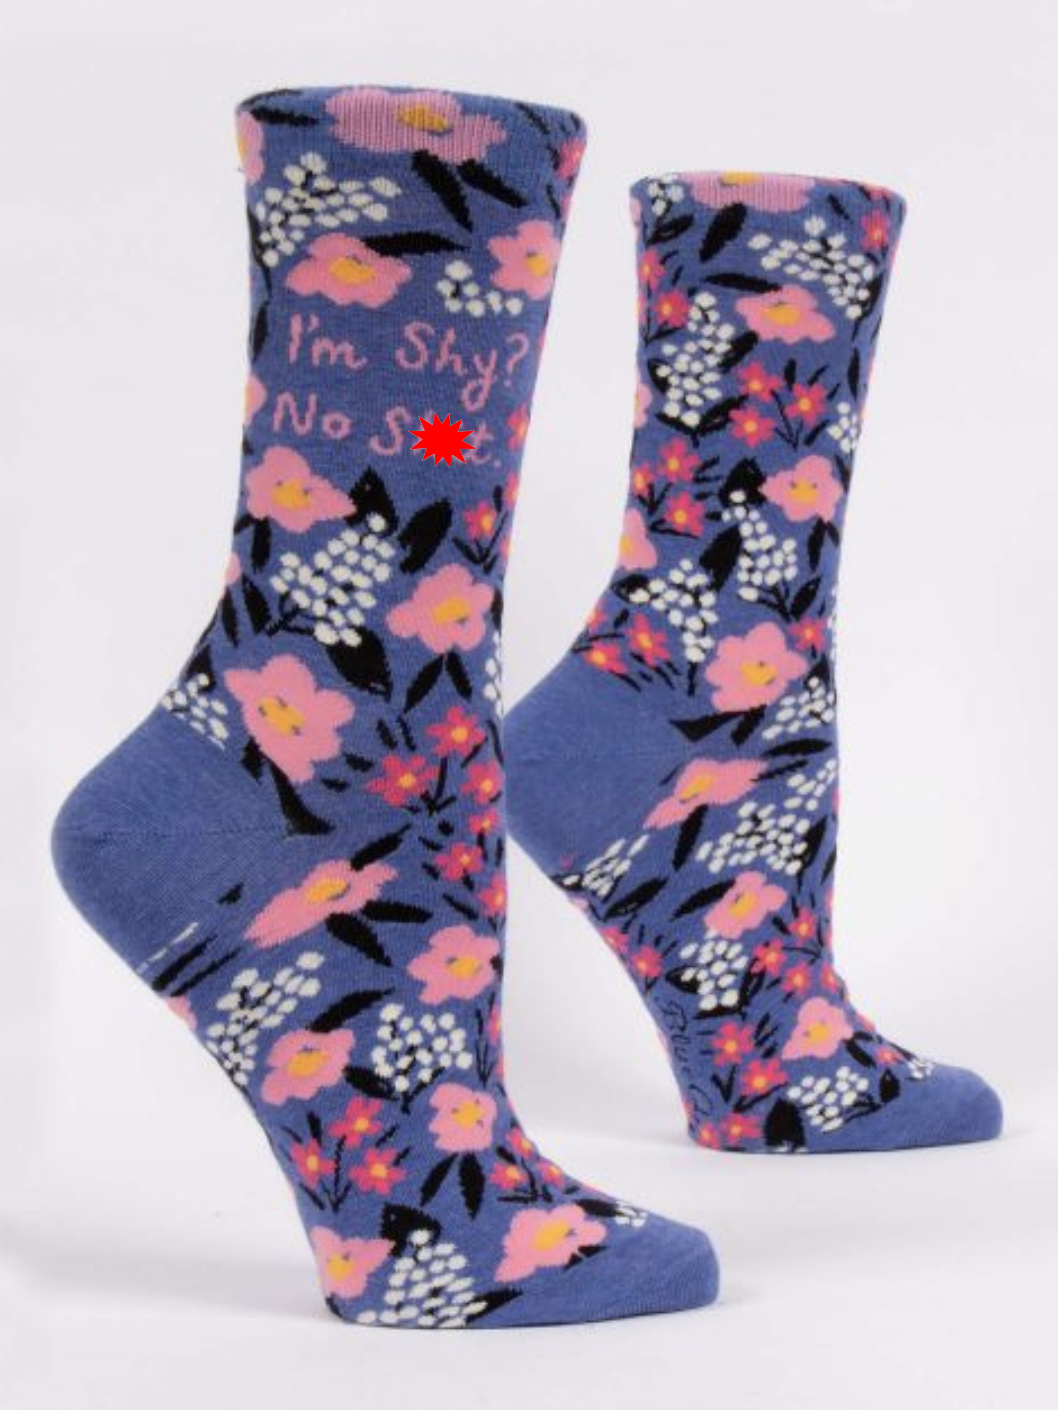 Blue Q I'm Shy? Women's Crew Socks